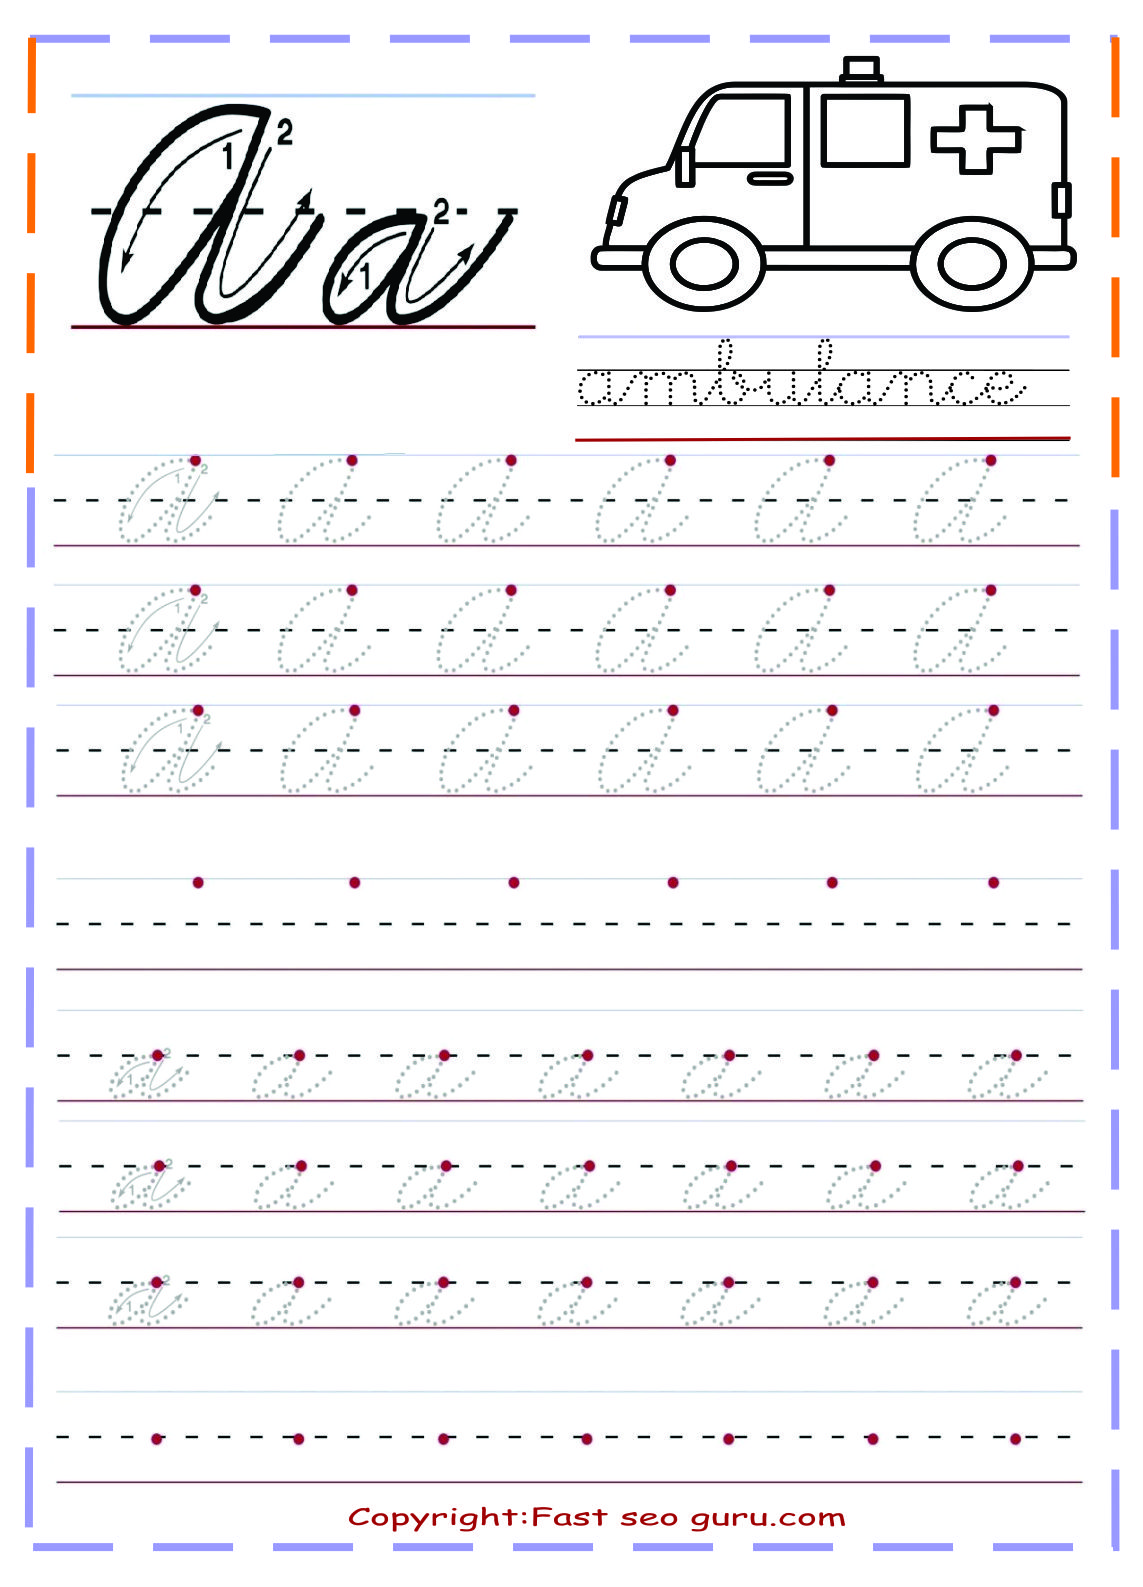 It's just an image of Inventive Cursive Writing Worksheet Free Printable